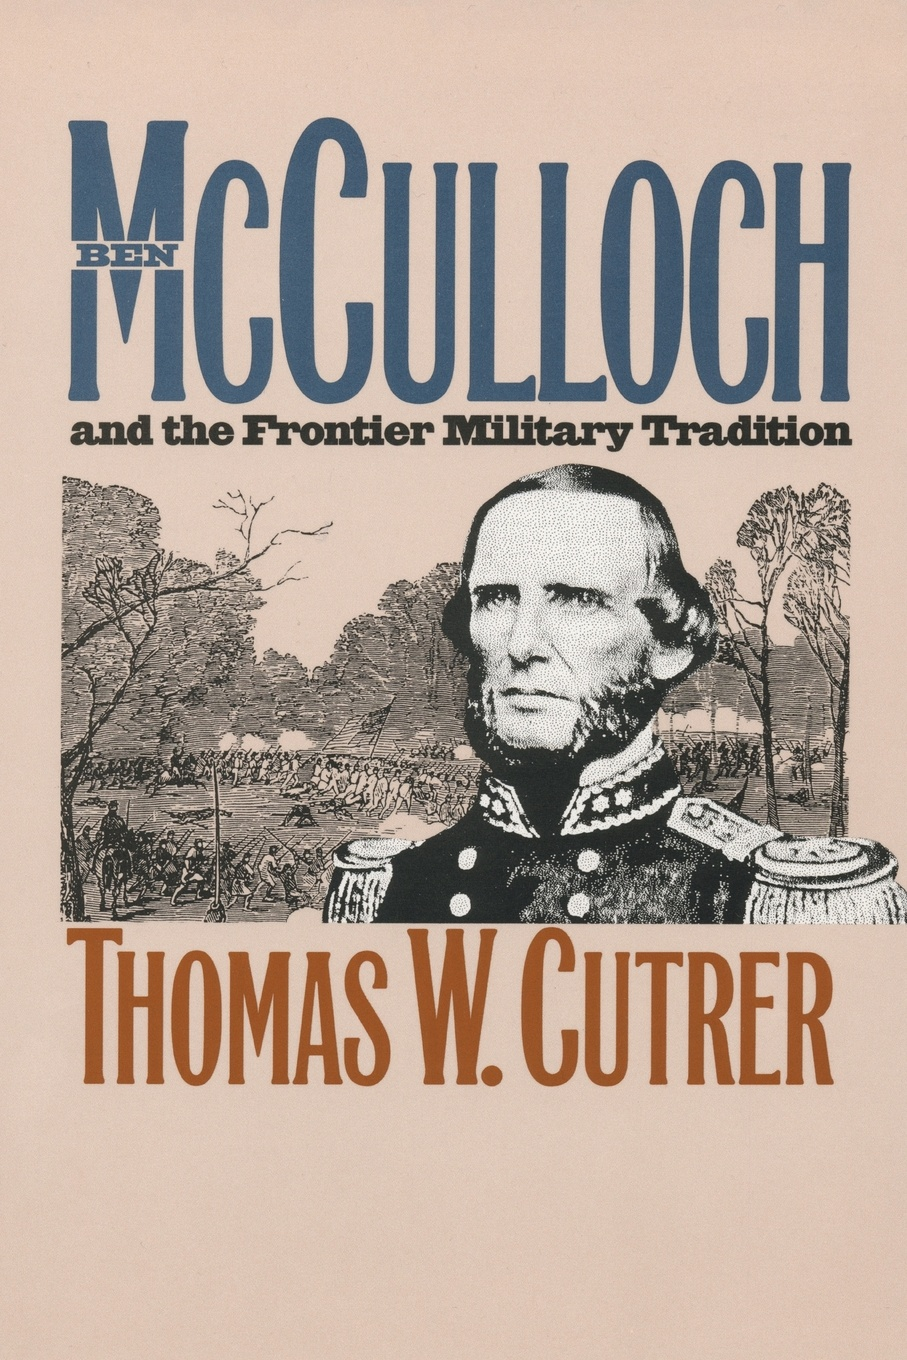 Thomas W. Cutrer Ben Mcculloch and the Frontier Military Tradition